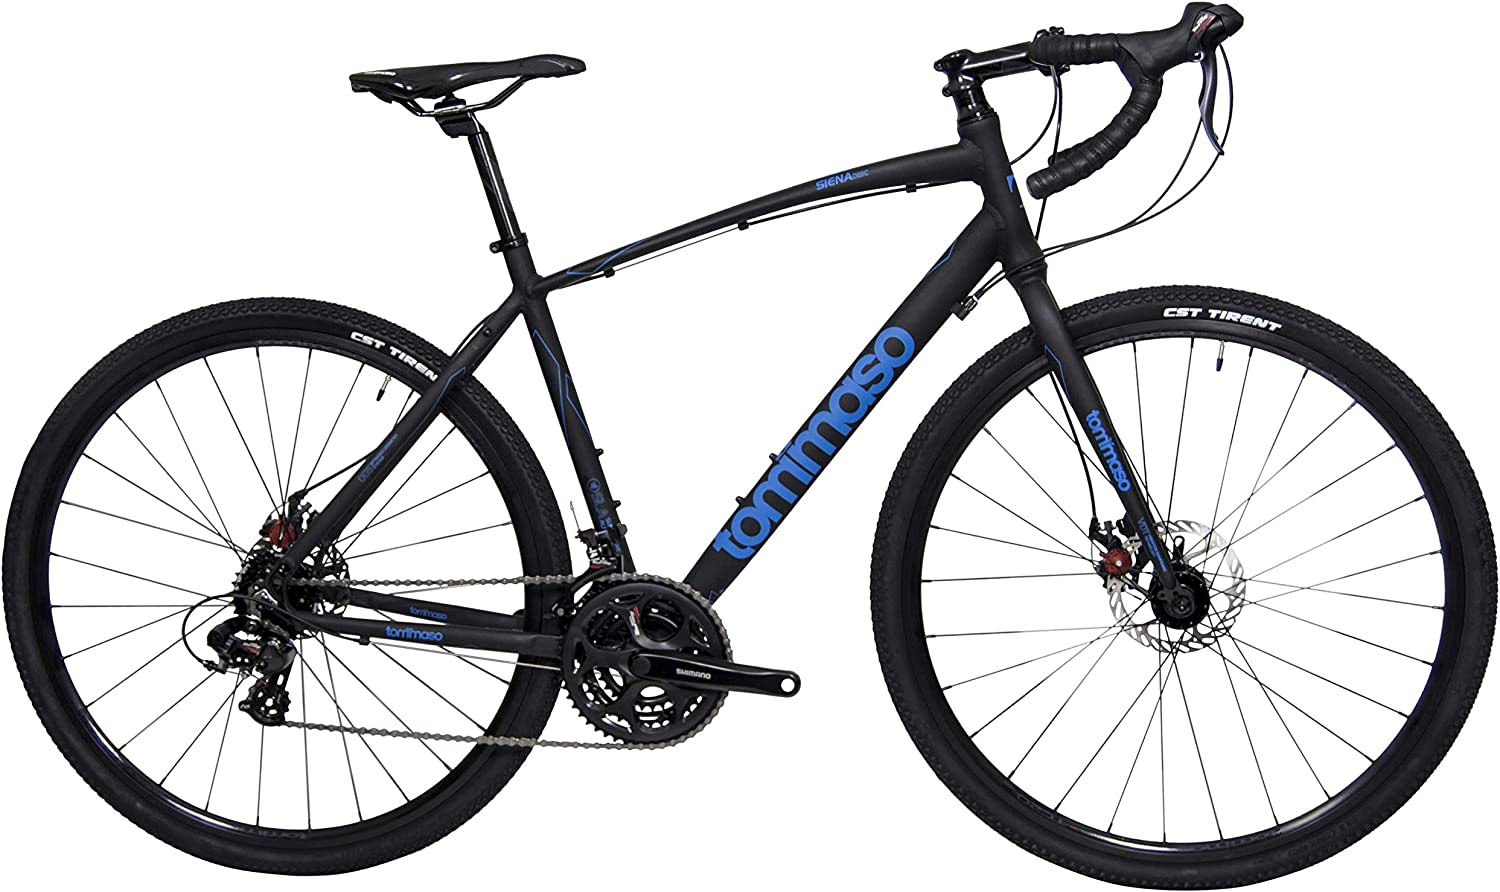 Tommaso Siena – Shimano Tourney Gravel Adventure Bike with Disc Brakes, Extra Wide Tires, Perfect for Road Or Dirt Touring, Matte Black